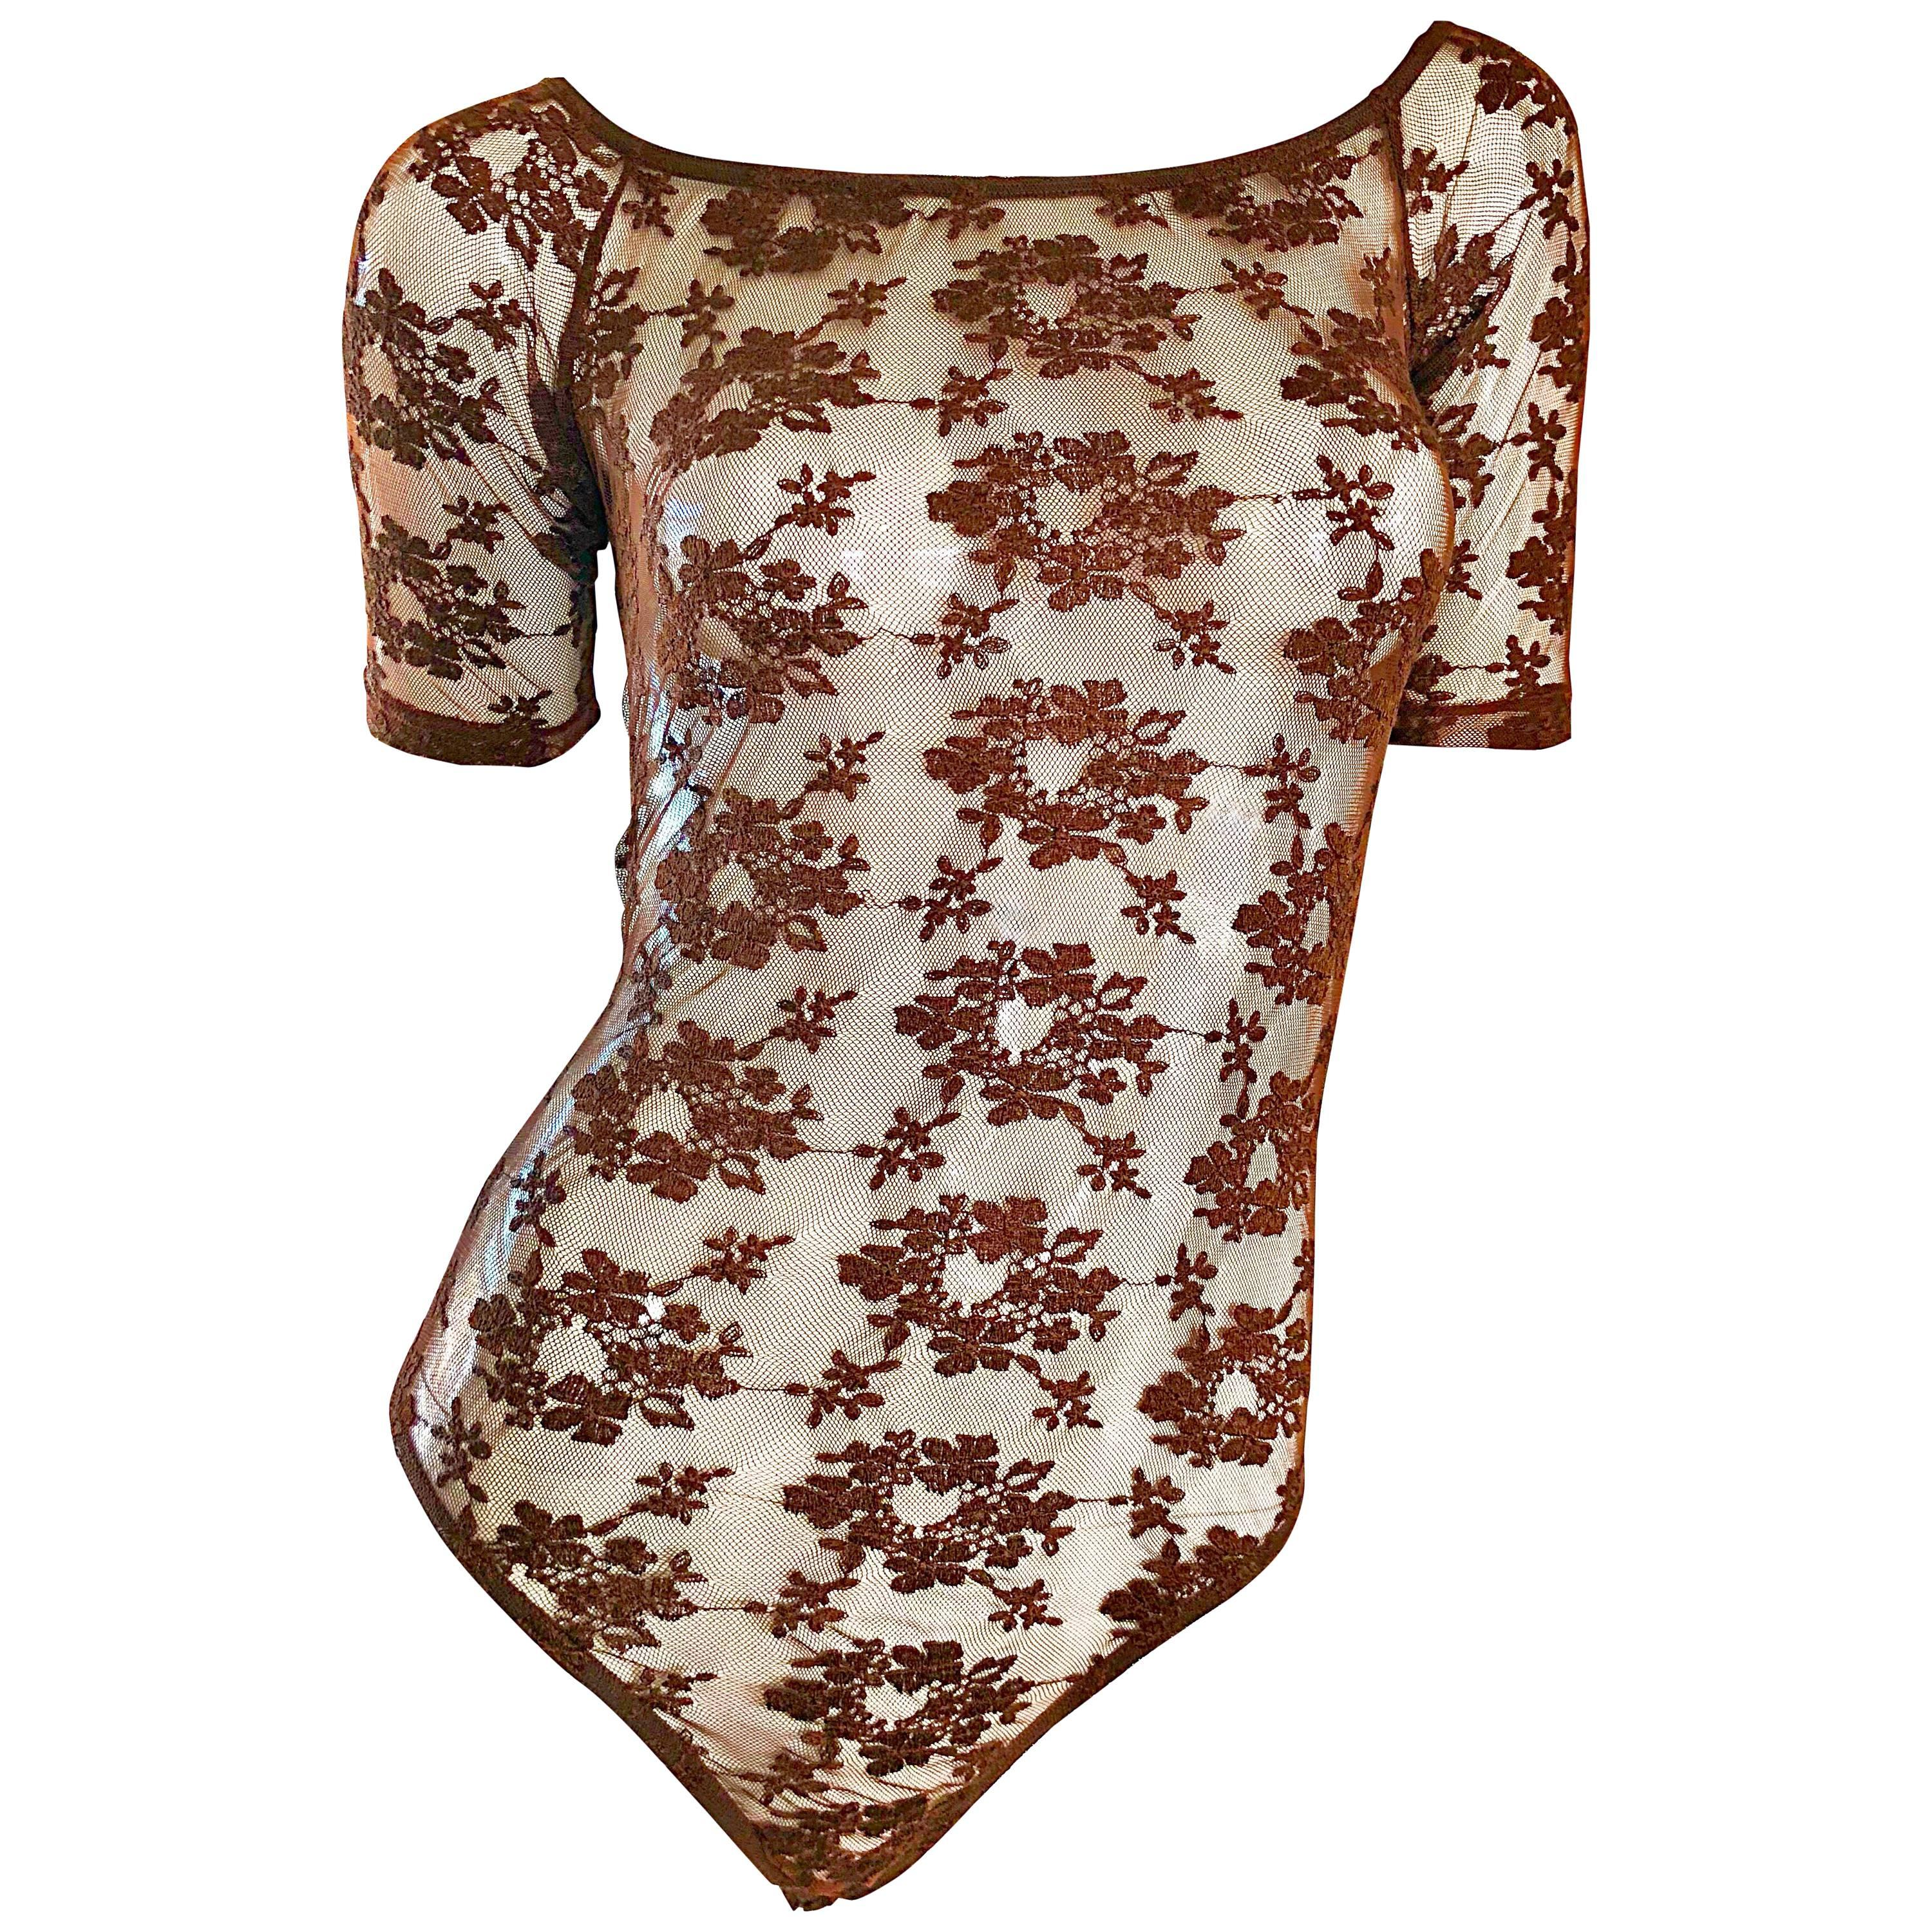 Rare Rifat Ozbek 1990s Choclate Brown French Lace 90s Vintage Bodysuit Top